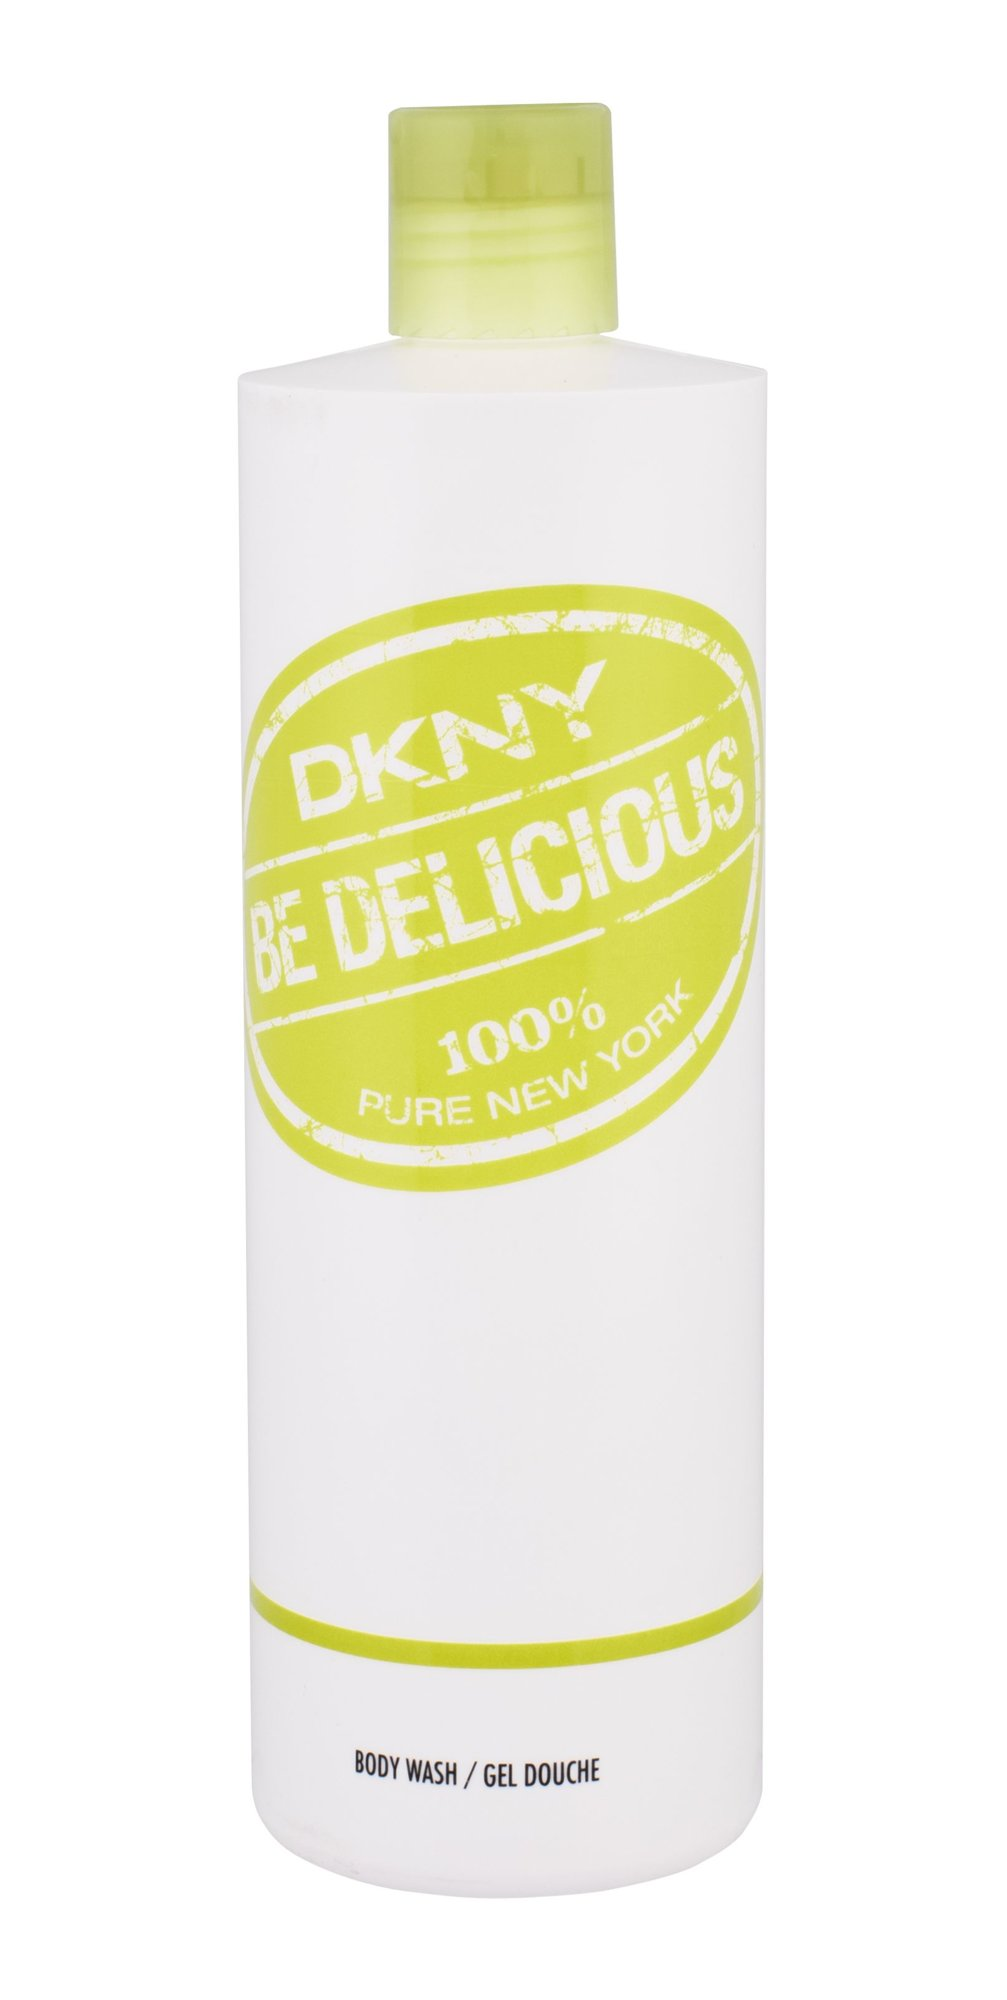 DKNY DKNY Be Delicious, tusfürdő gél 475ml